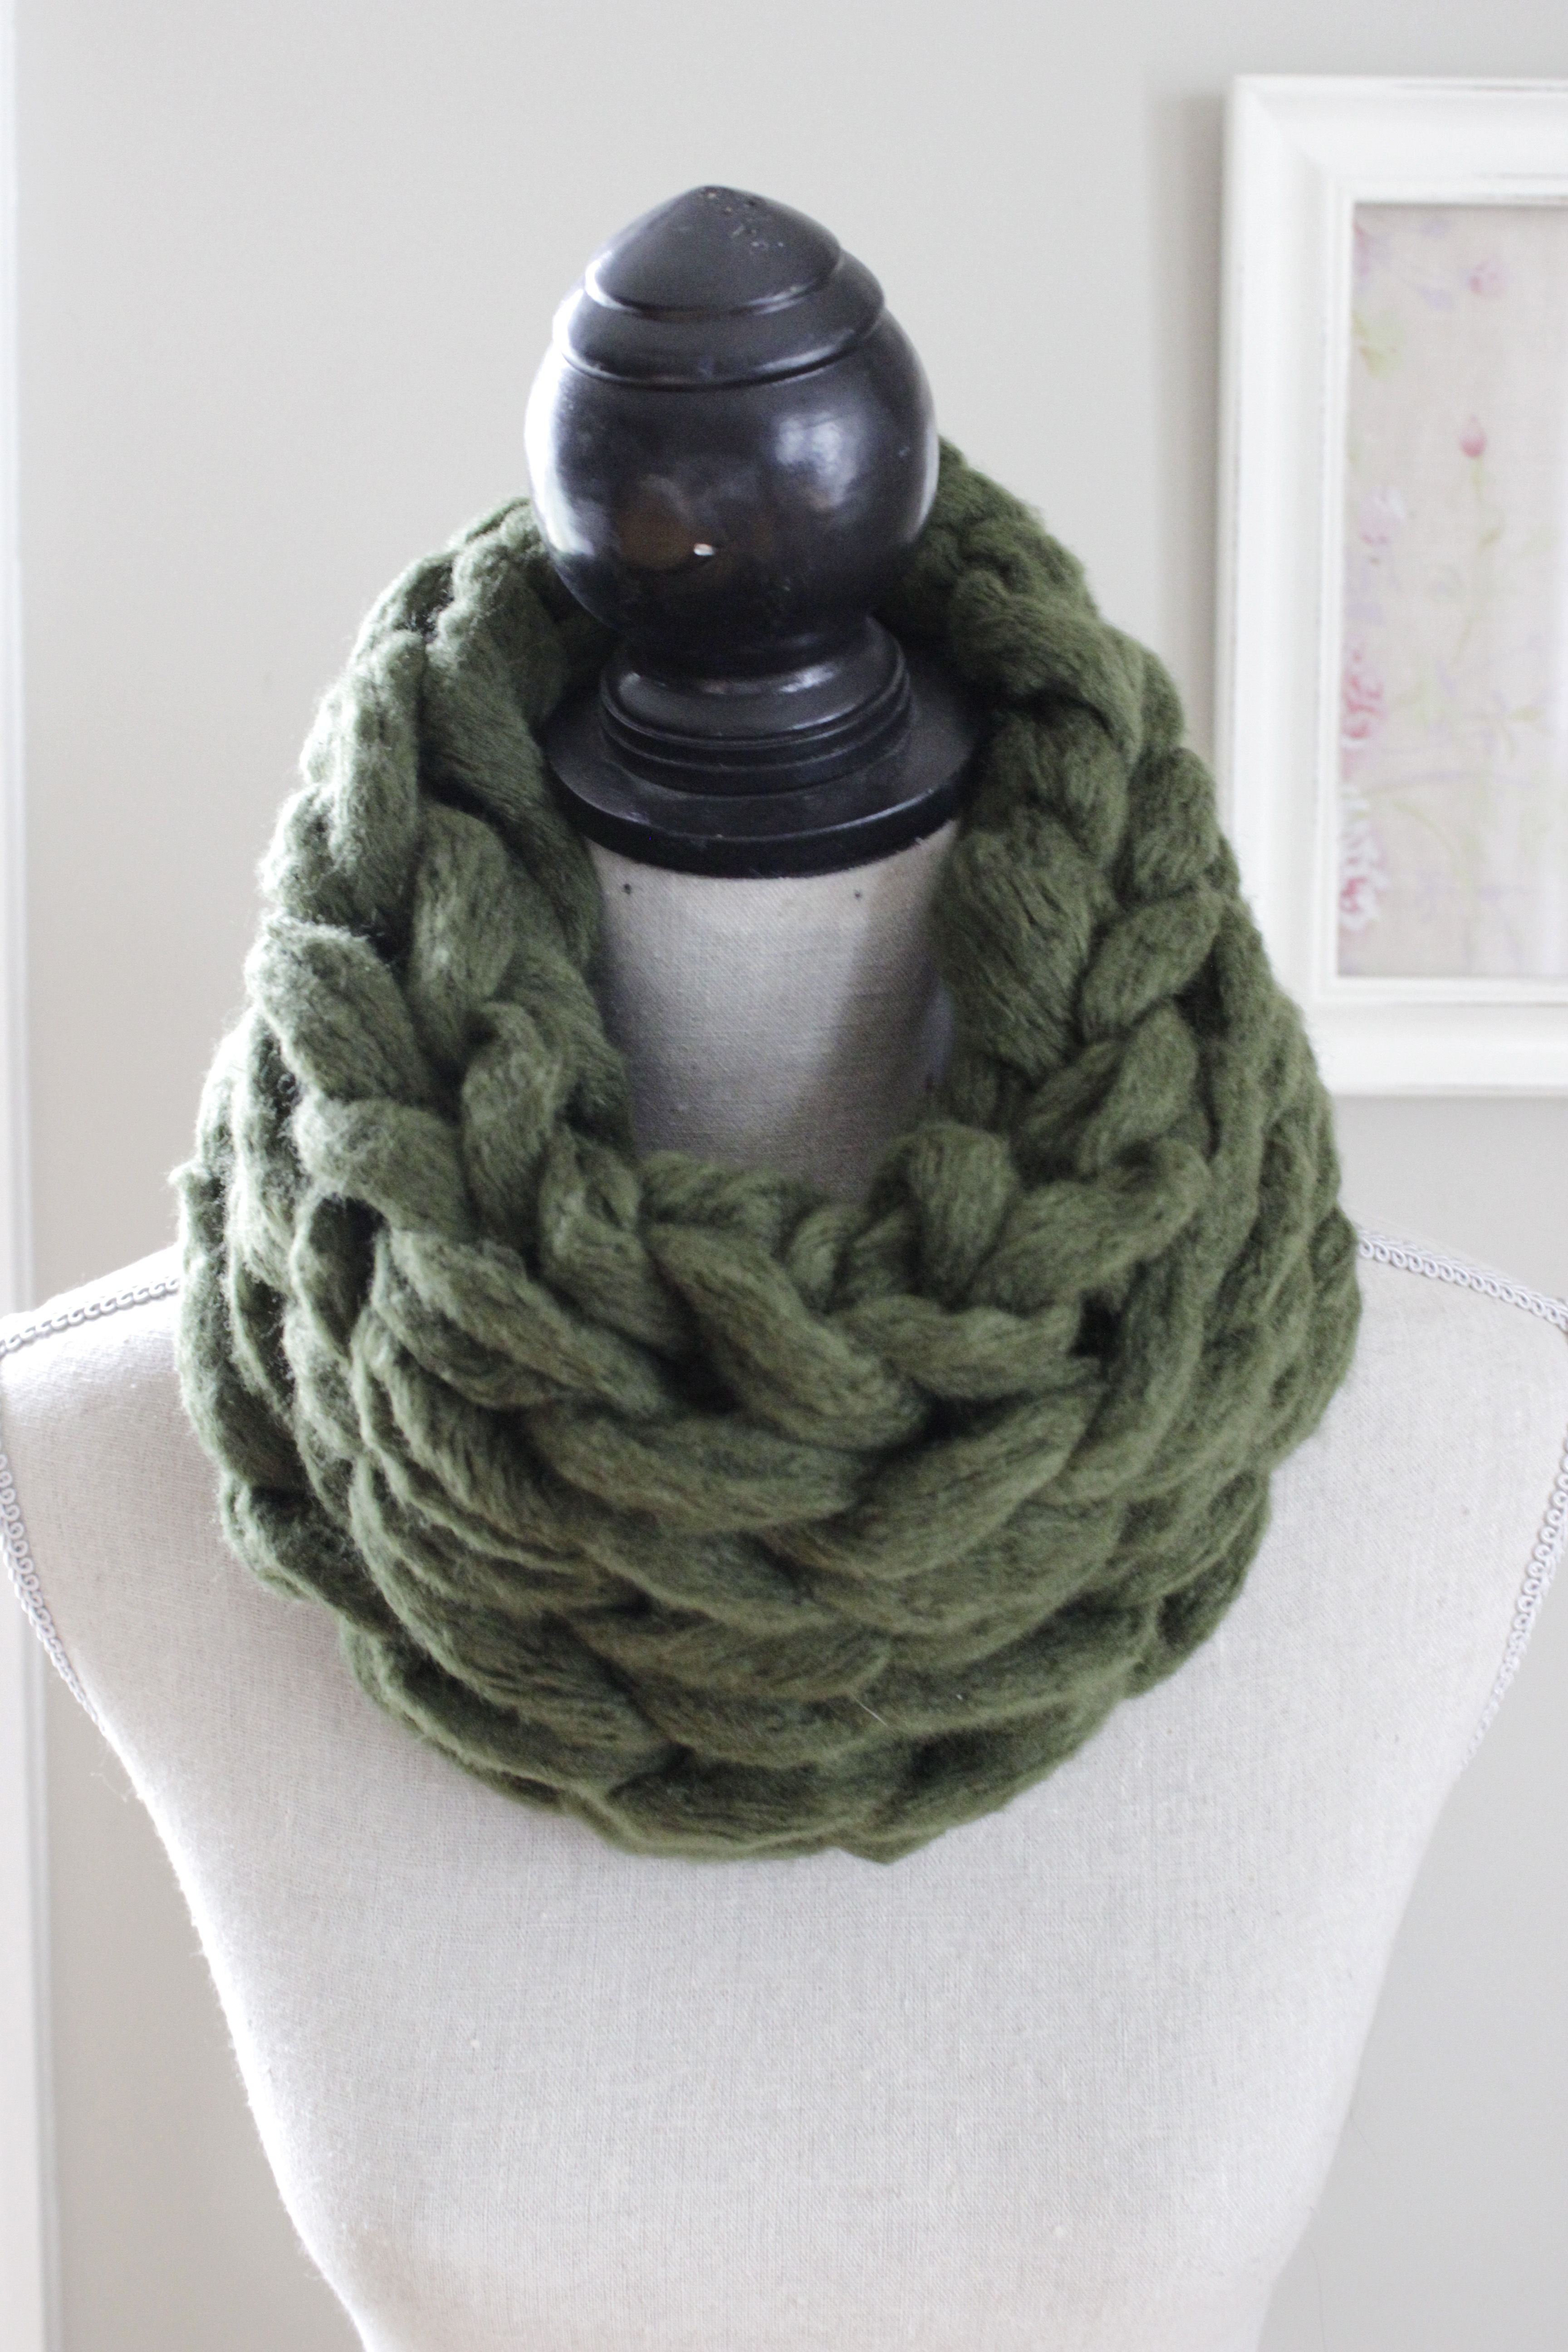 Super Chunky Arm Knit Infinity Scarf - Green · The Velvet Cove ...